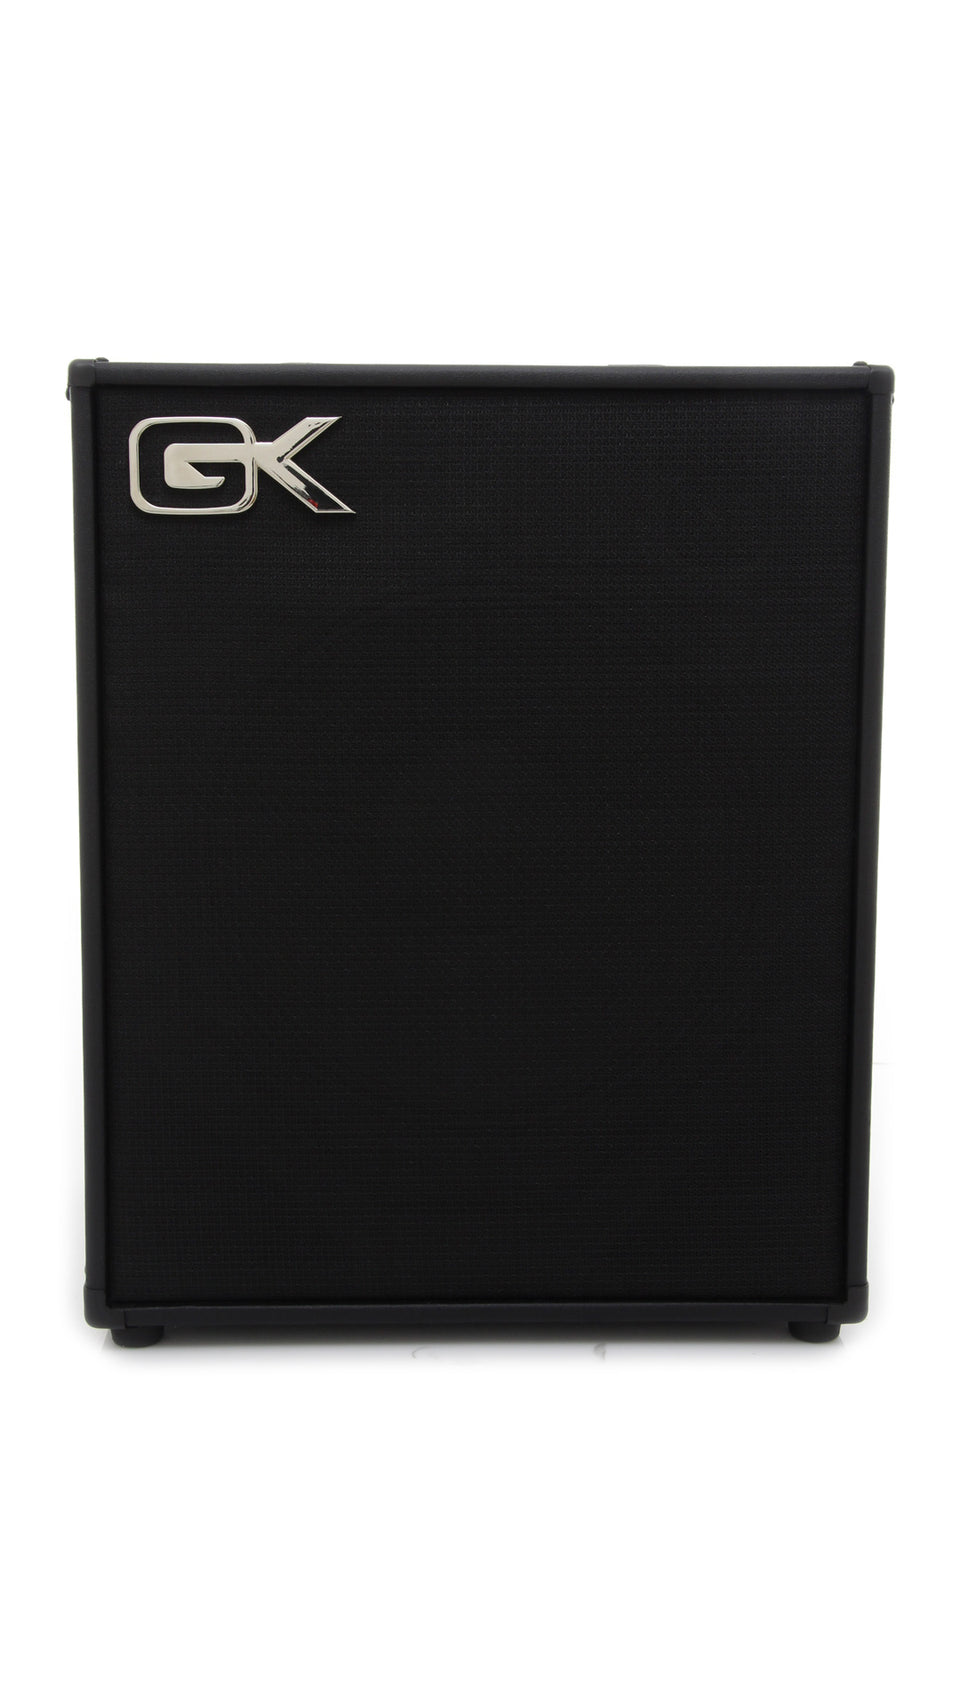 "Gallien-Krueger MB 115-II 200W 1x15"" Bass Combo Amplifier"